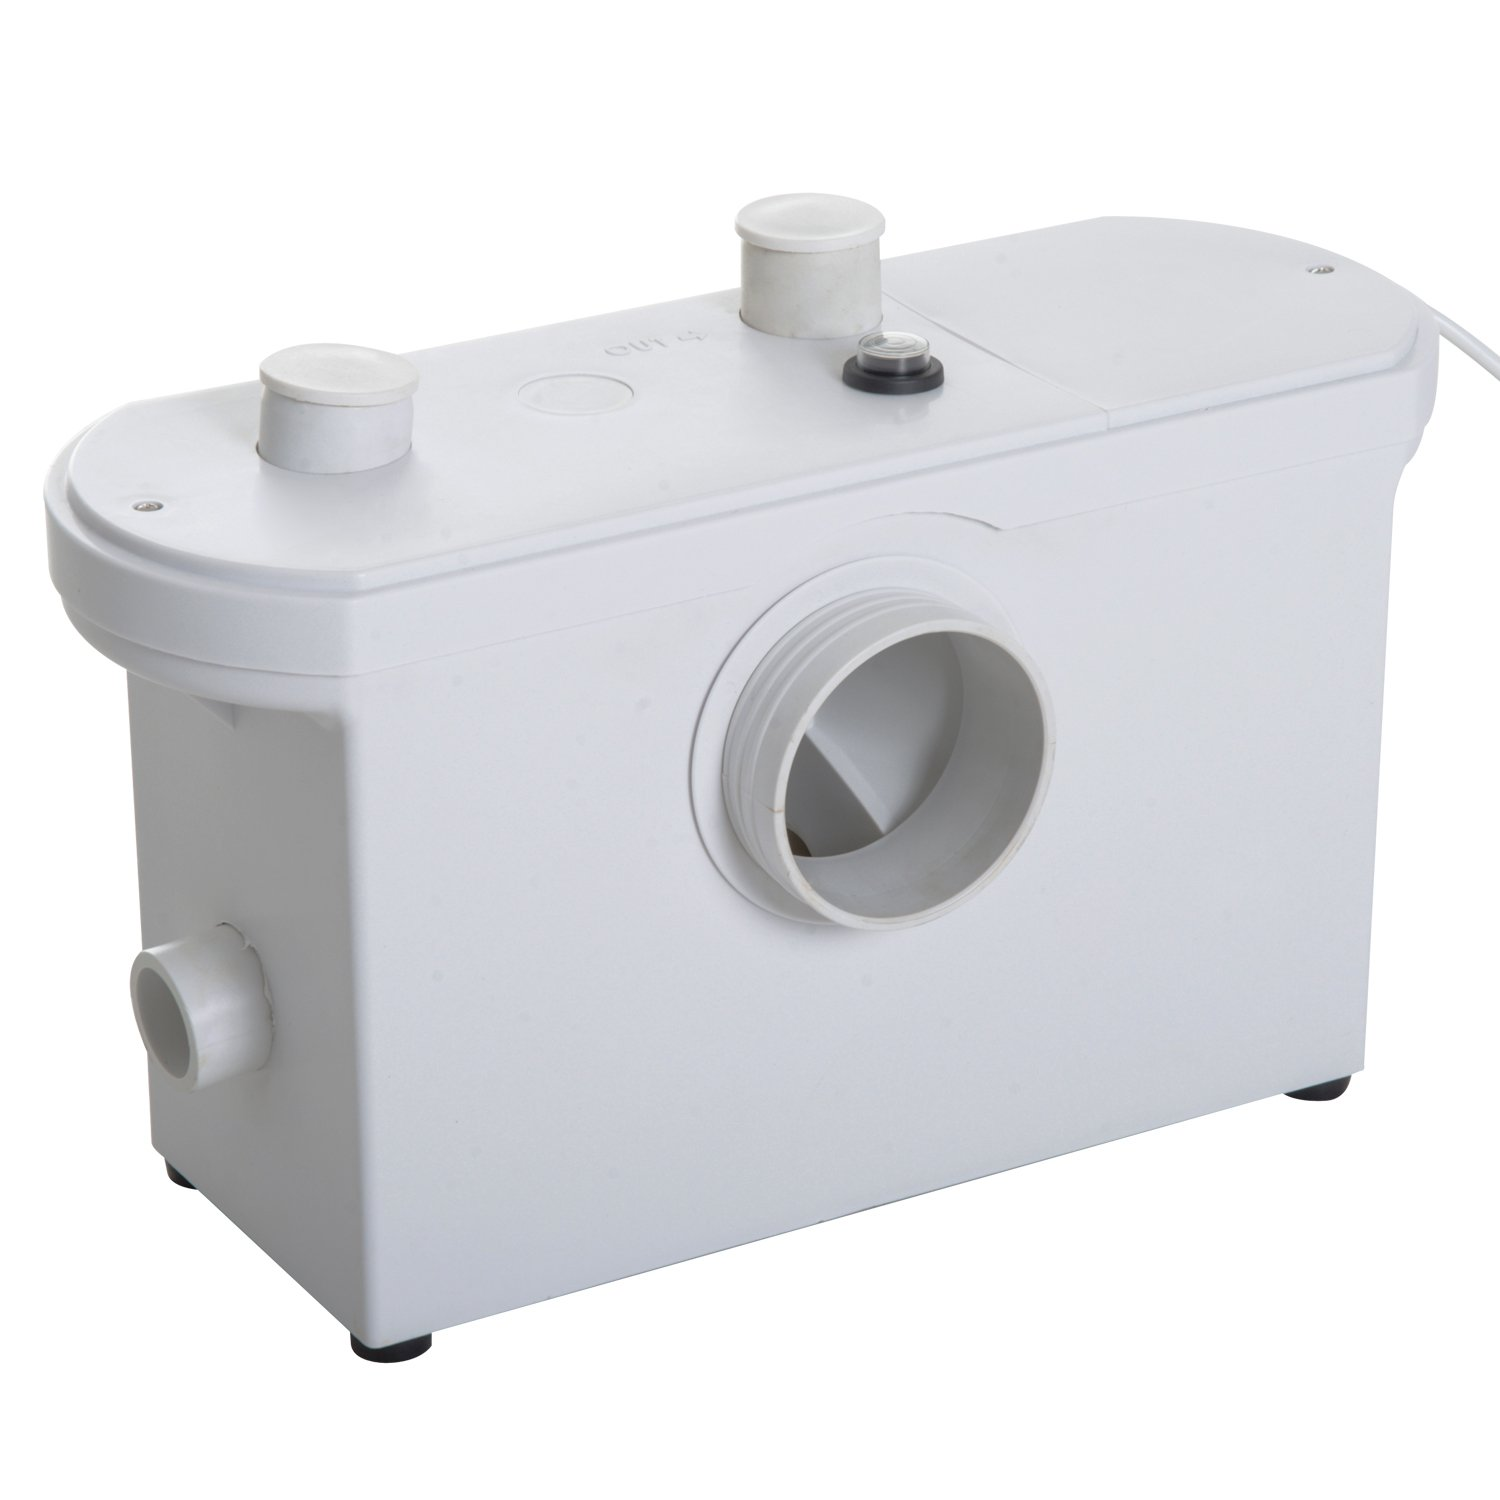 Homcom 600W Sewerage Pump Macerator Toilet Waste Water Pump Sanitary Sink Basin with 4 Inlets Sold By MHSTAR